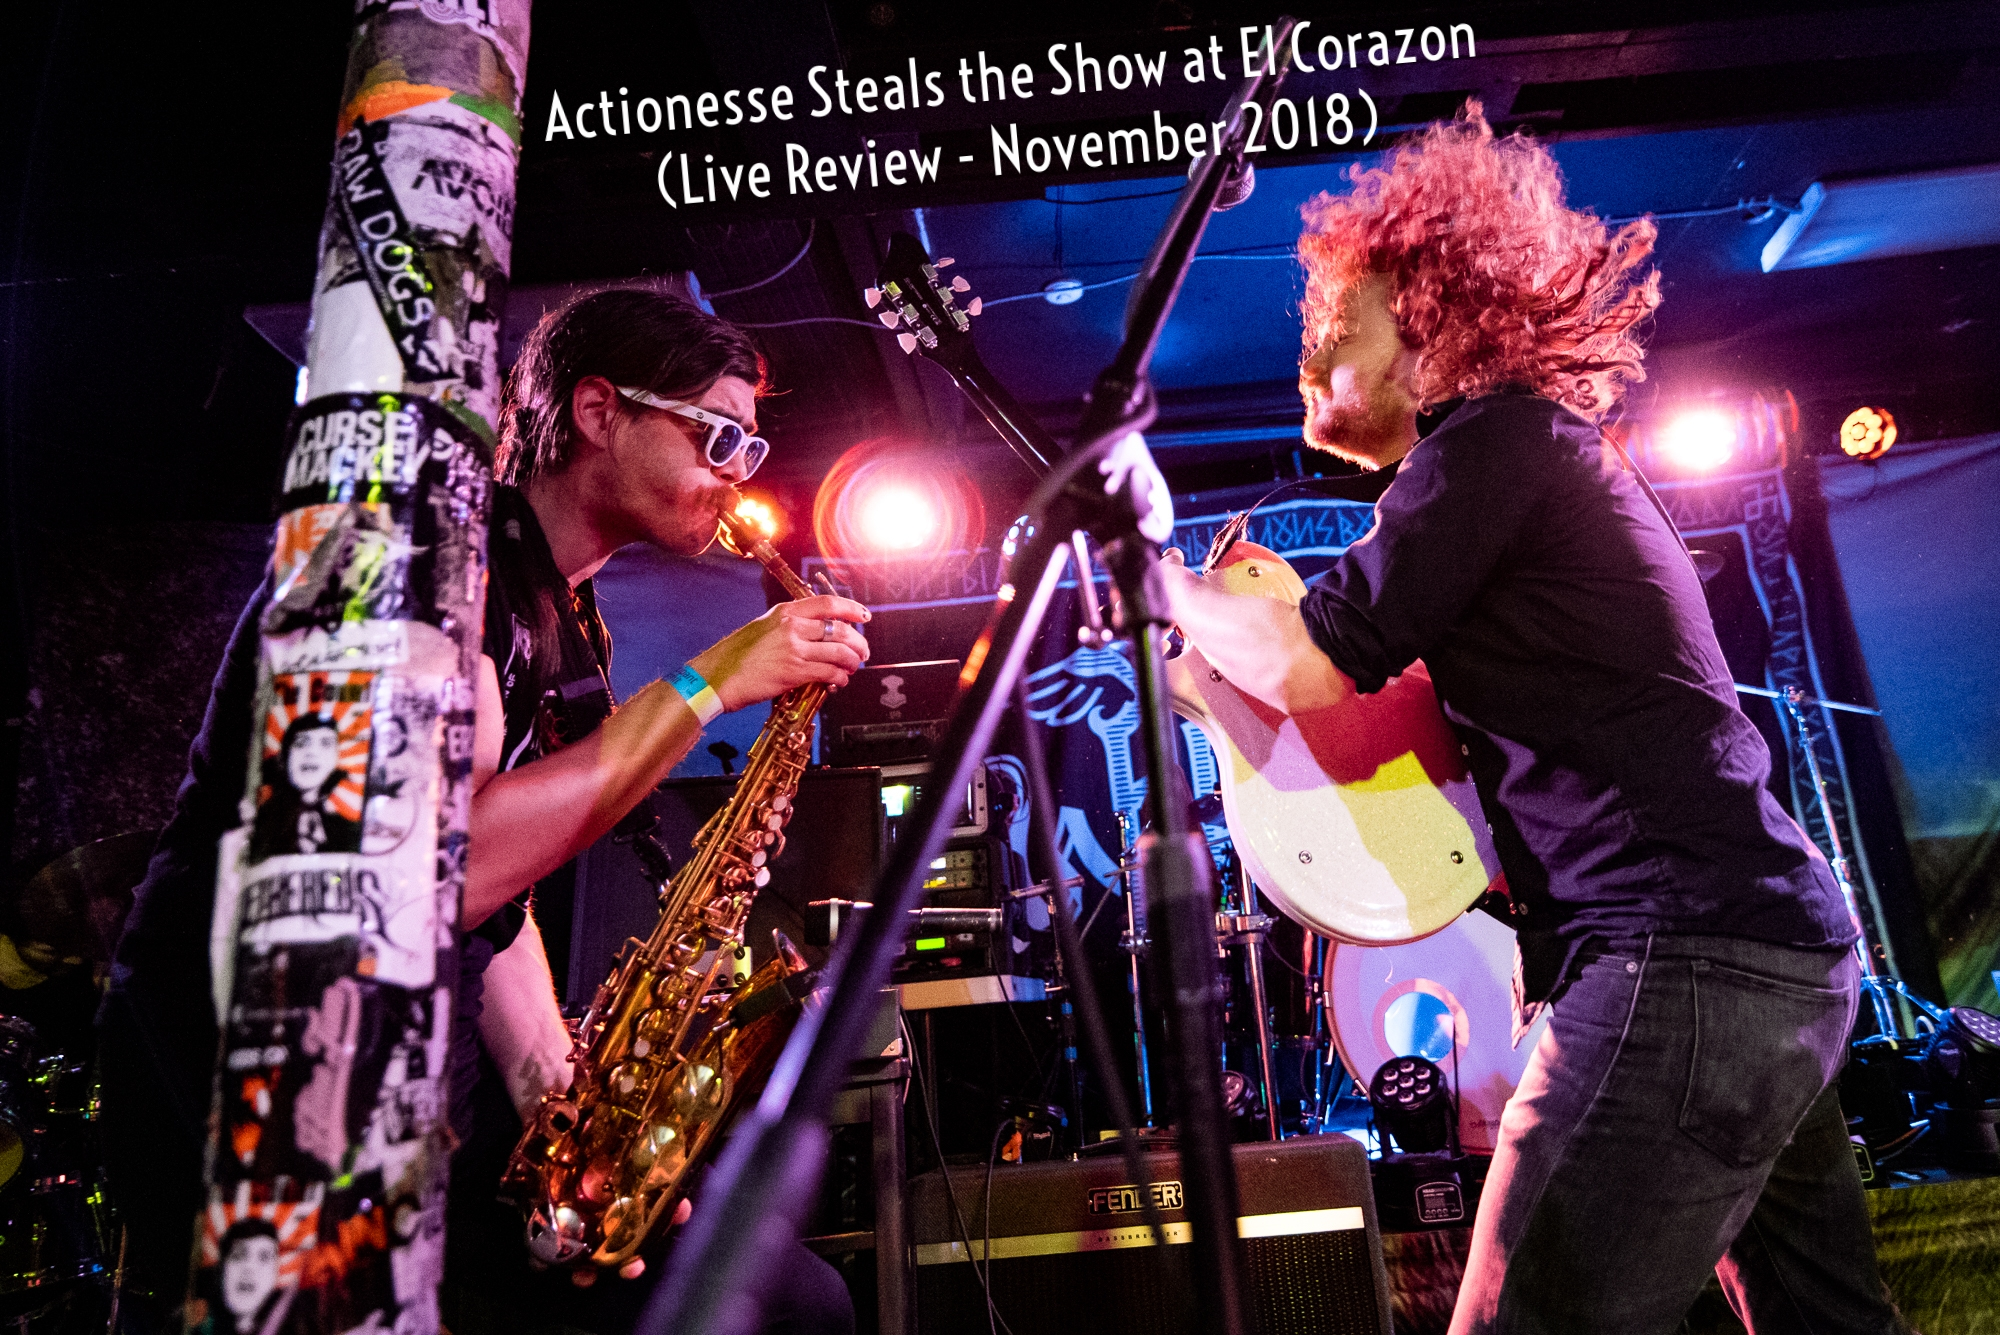 """Halfway through the show, provided with ample backbone by drummer Jimmy Colven, the quartet was joined by a guest horn star on the [baritone] saxophone. What followed was life changing."" - Dan's Tunes"